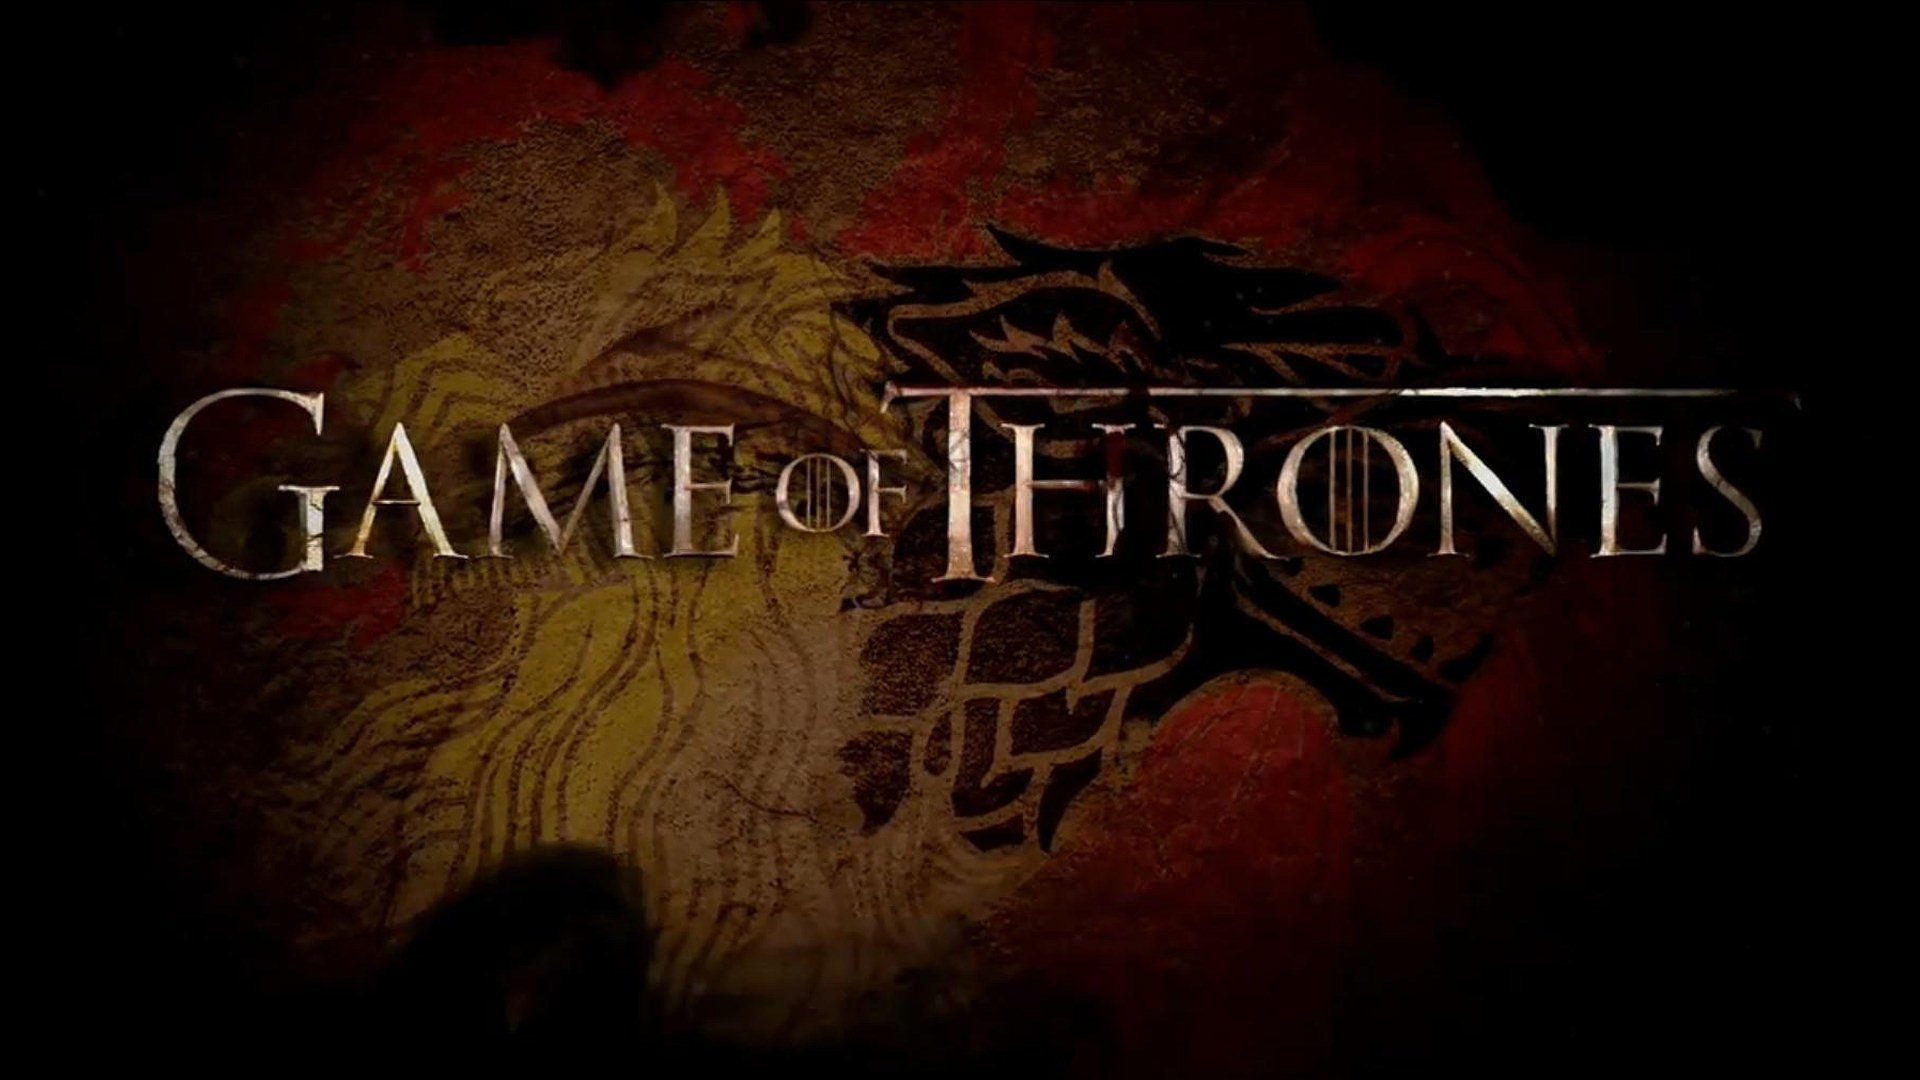 Game of Thrones logo picture